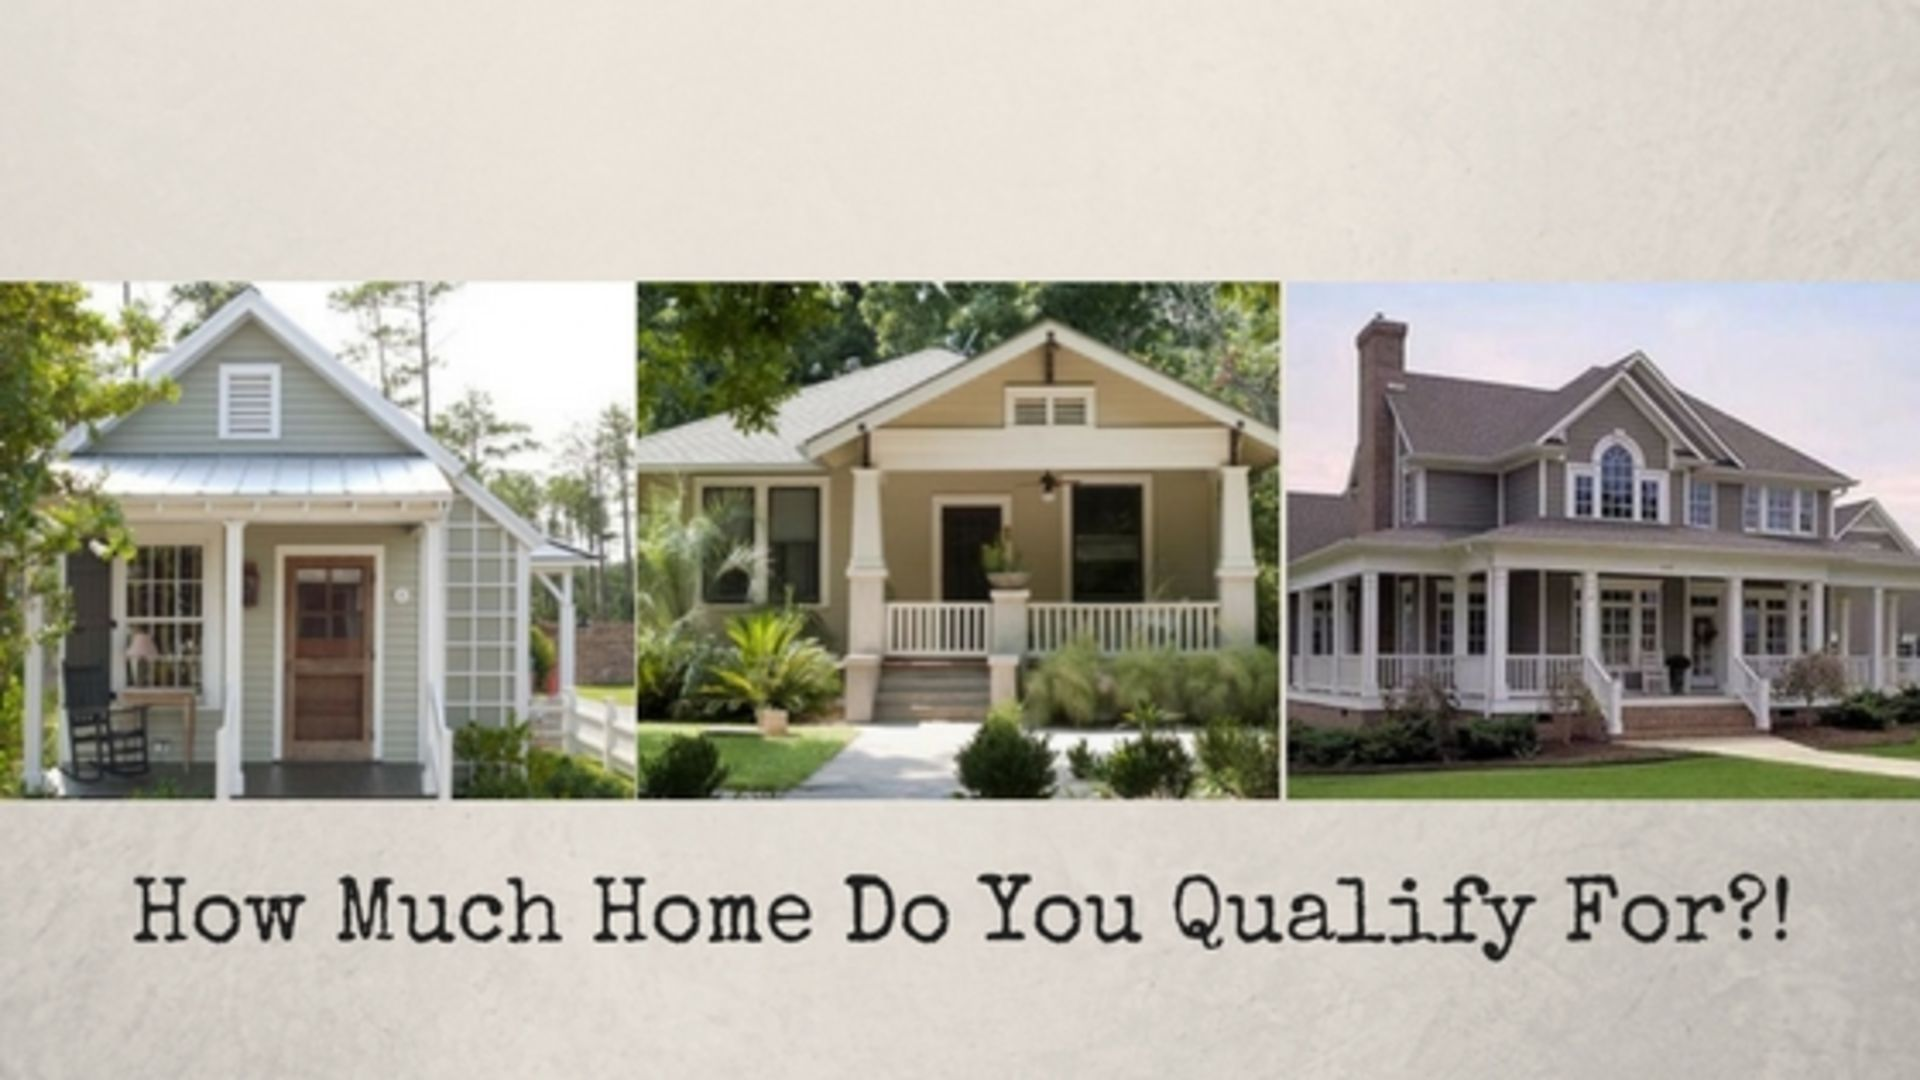 First Step to Buying a Home! – How Much Home Do You Qualify For?!